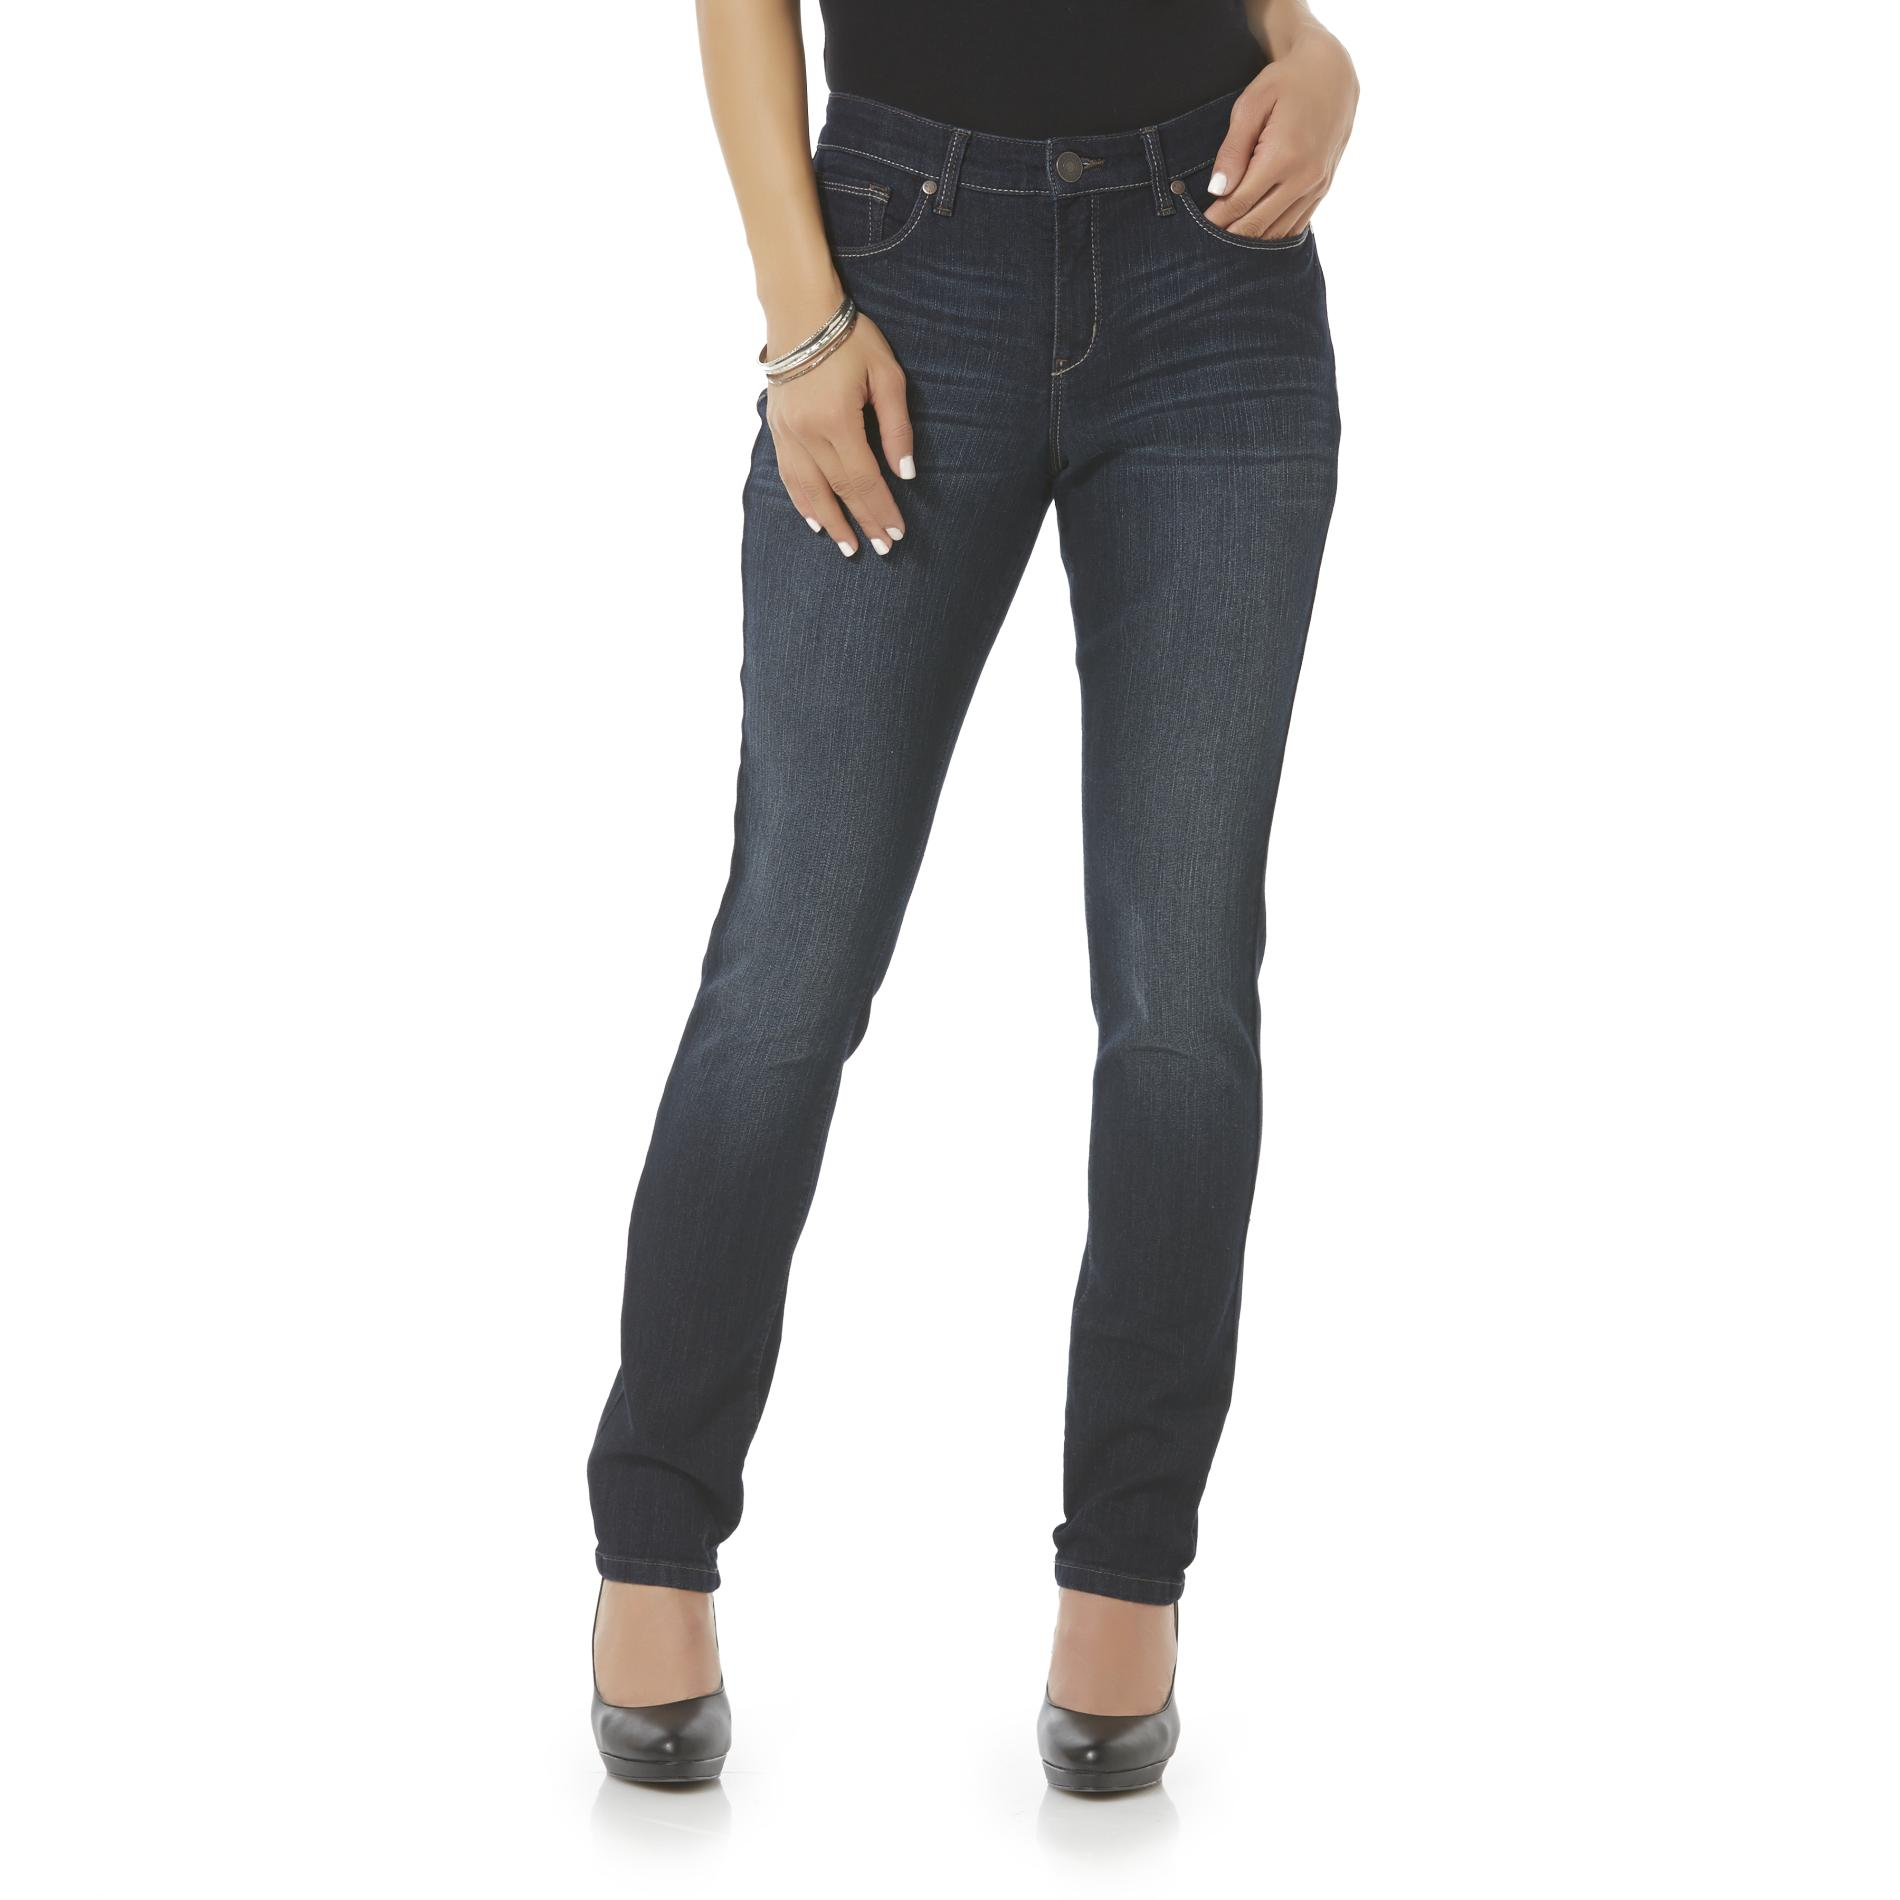 Canyon River Blues Women's Modern Fit Skinny Jeans - Dark Wash